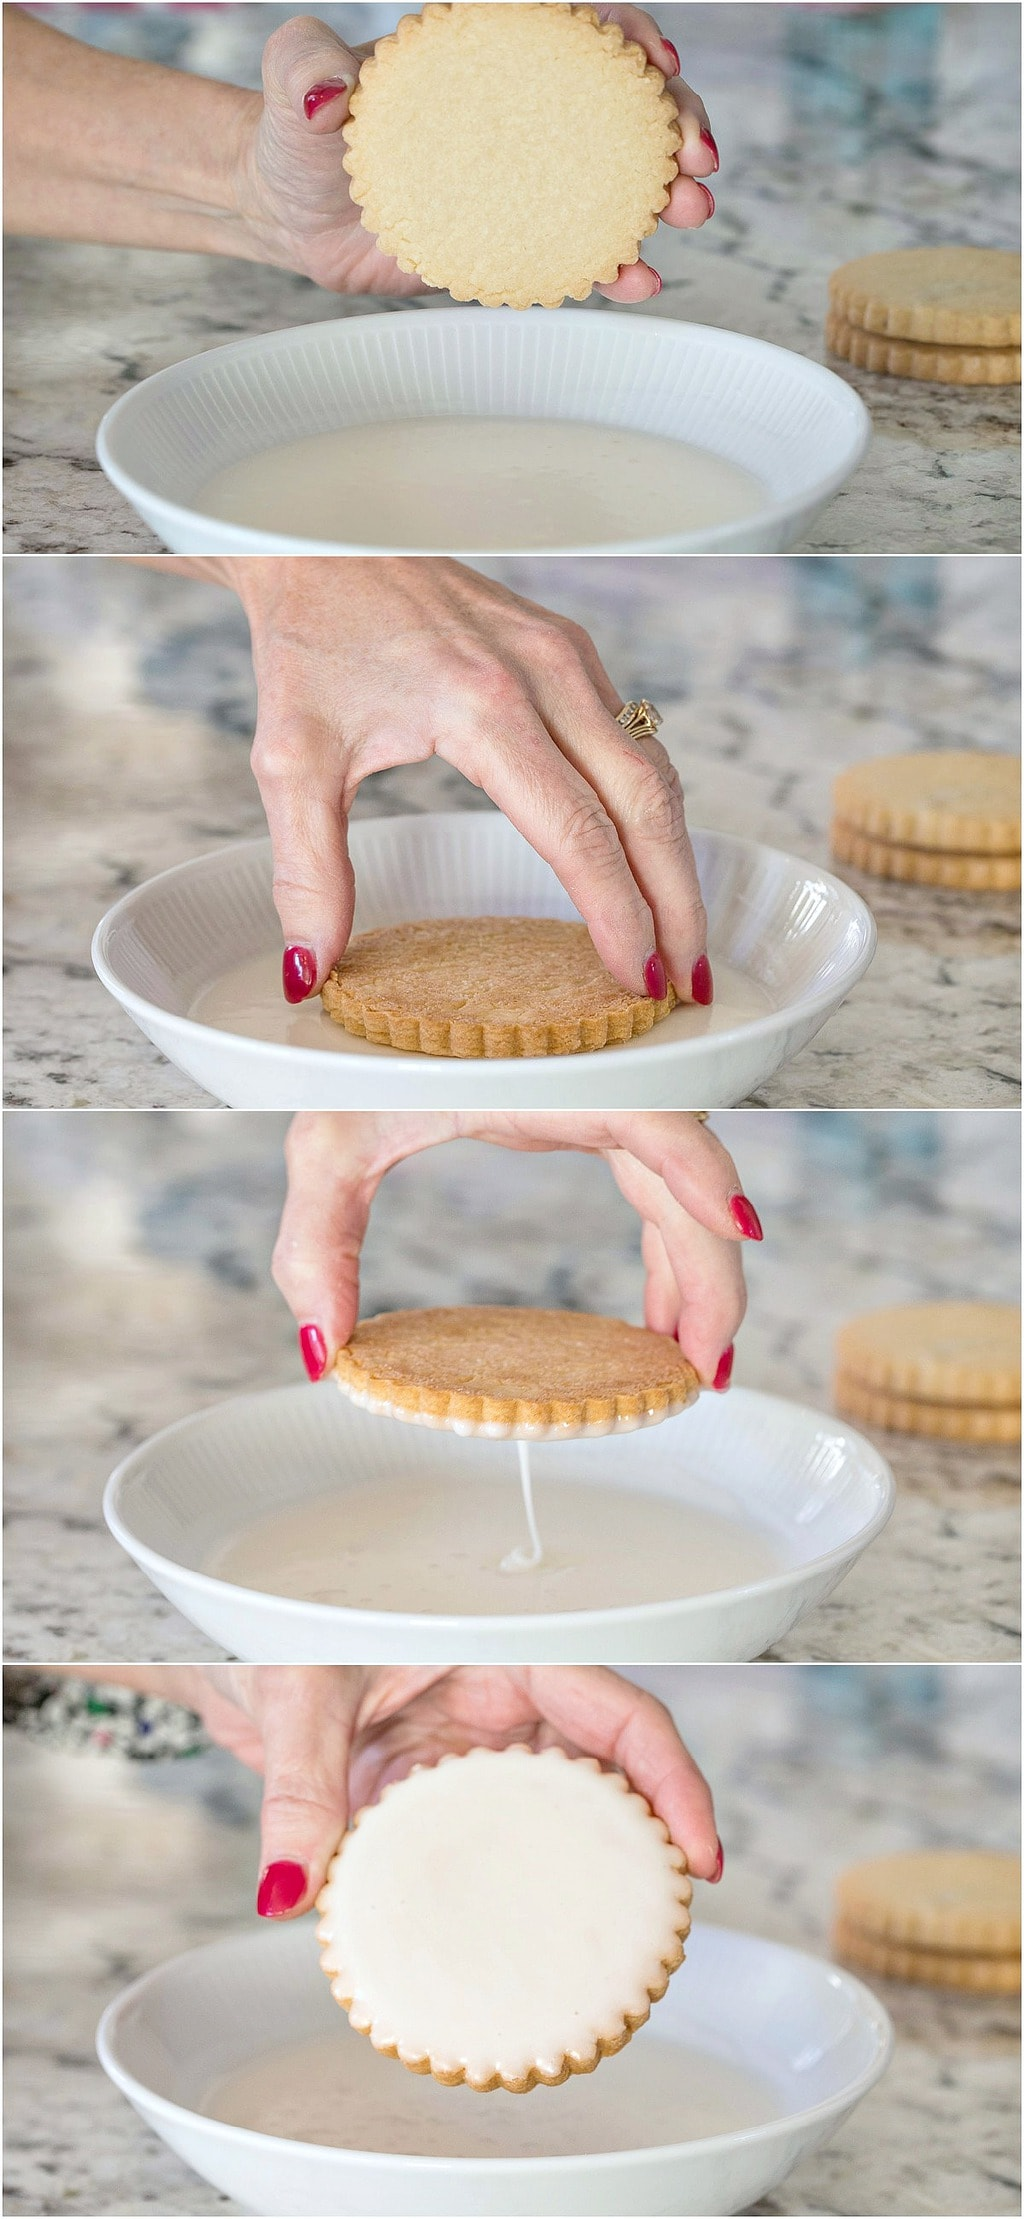 How-to collage of icing Easy Decorated Shortbread Cookies.